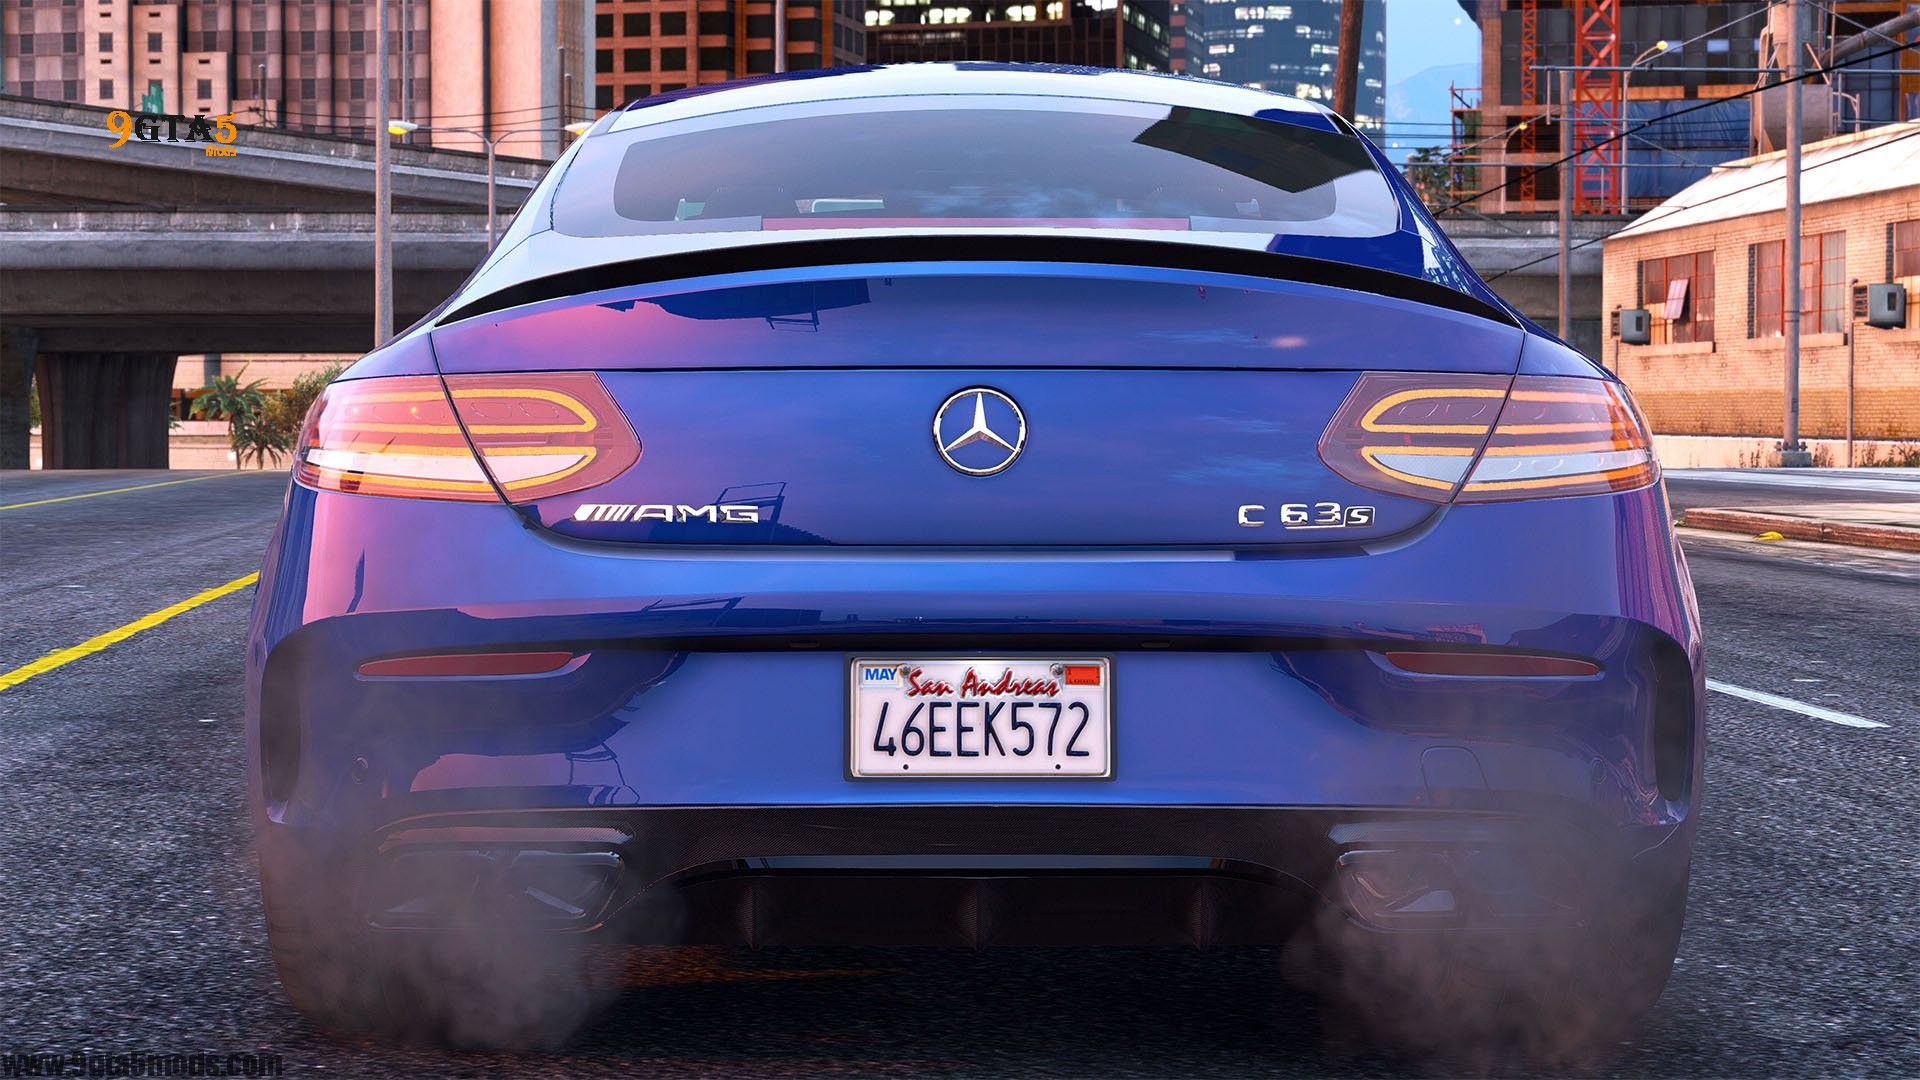 Download 2016 Mercedes C63 AMG S Coupe | GTA 5 Vehicles 11